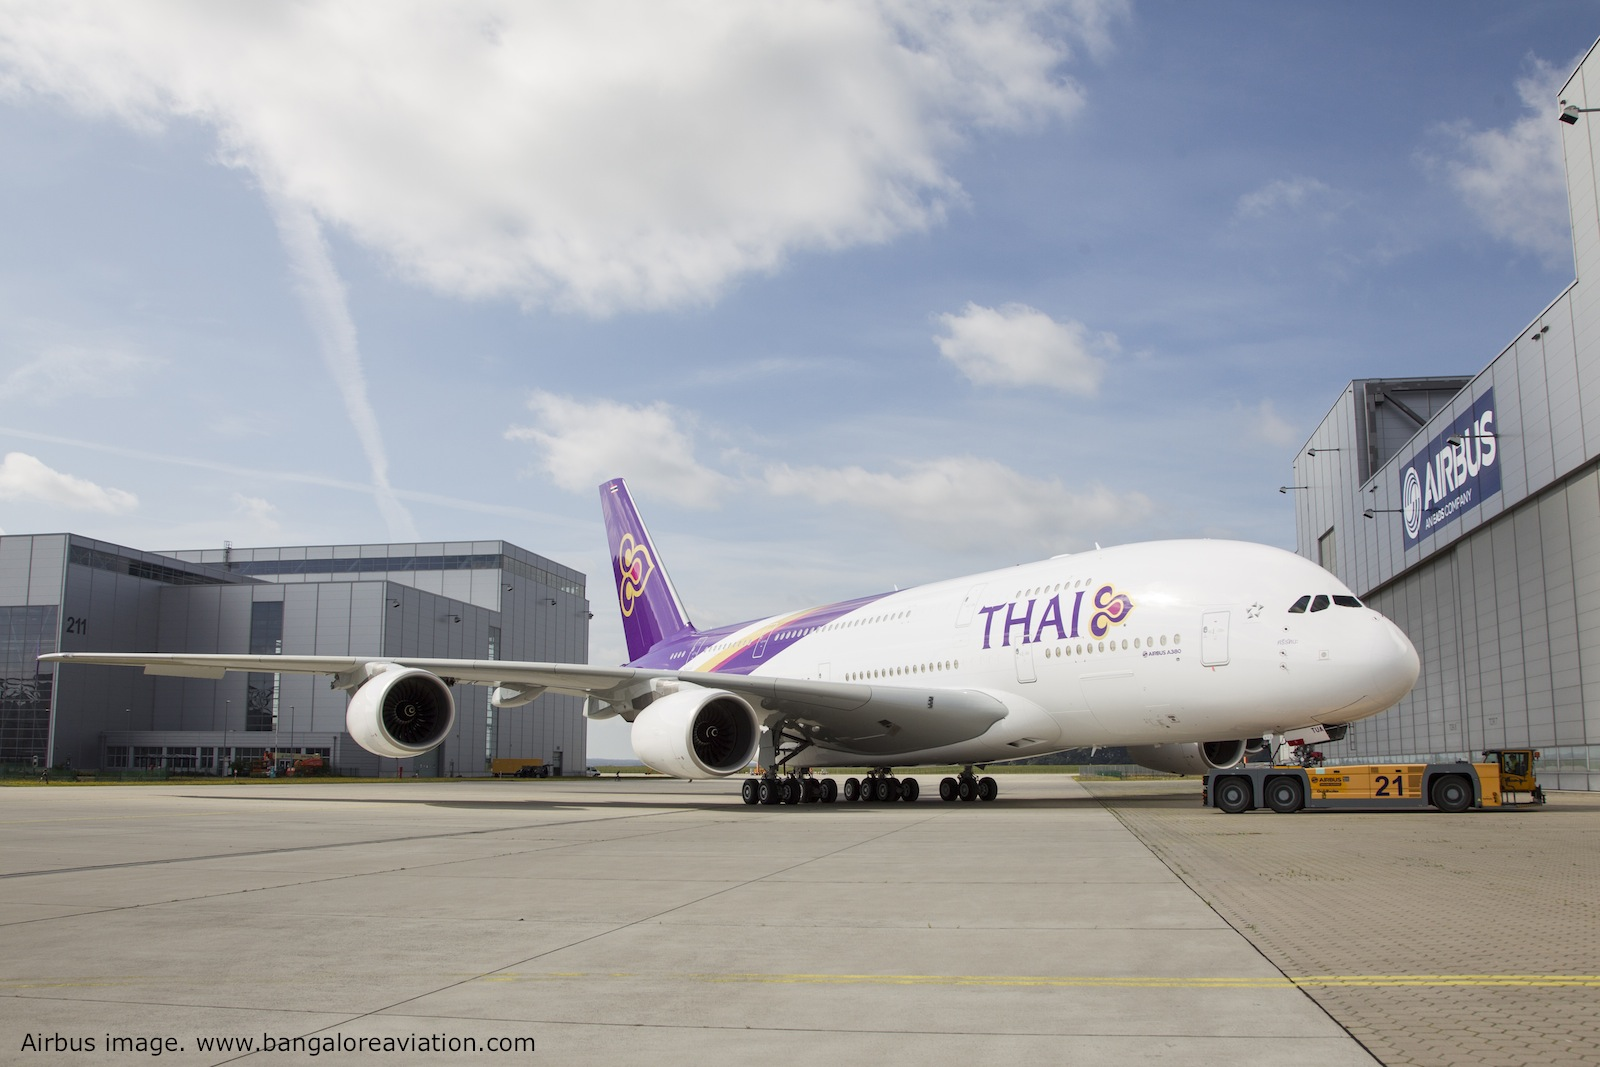 Thai Airways A380 livery